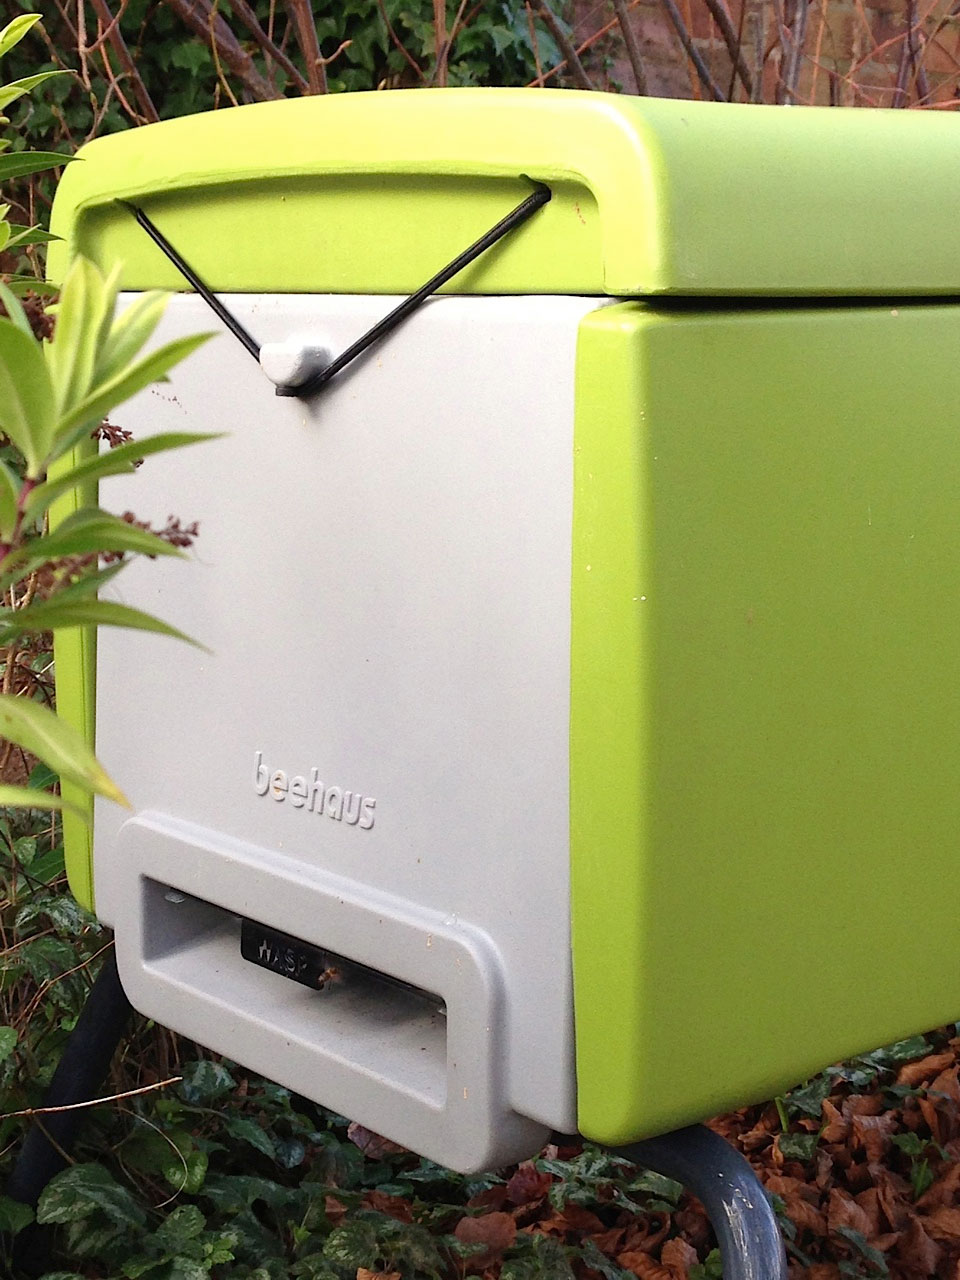 Beehaus Modern Plastic Beehive For Easy Beekeeping Learn More At Electricfenceonlinecouk Http Girlmeetsbeeblogspotcouk